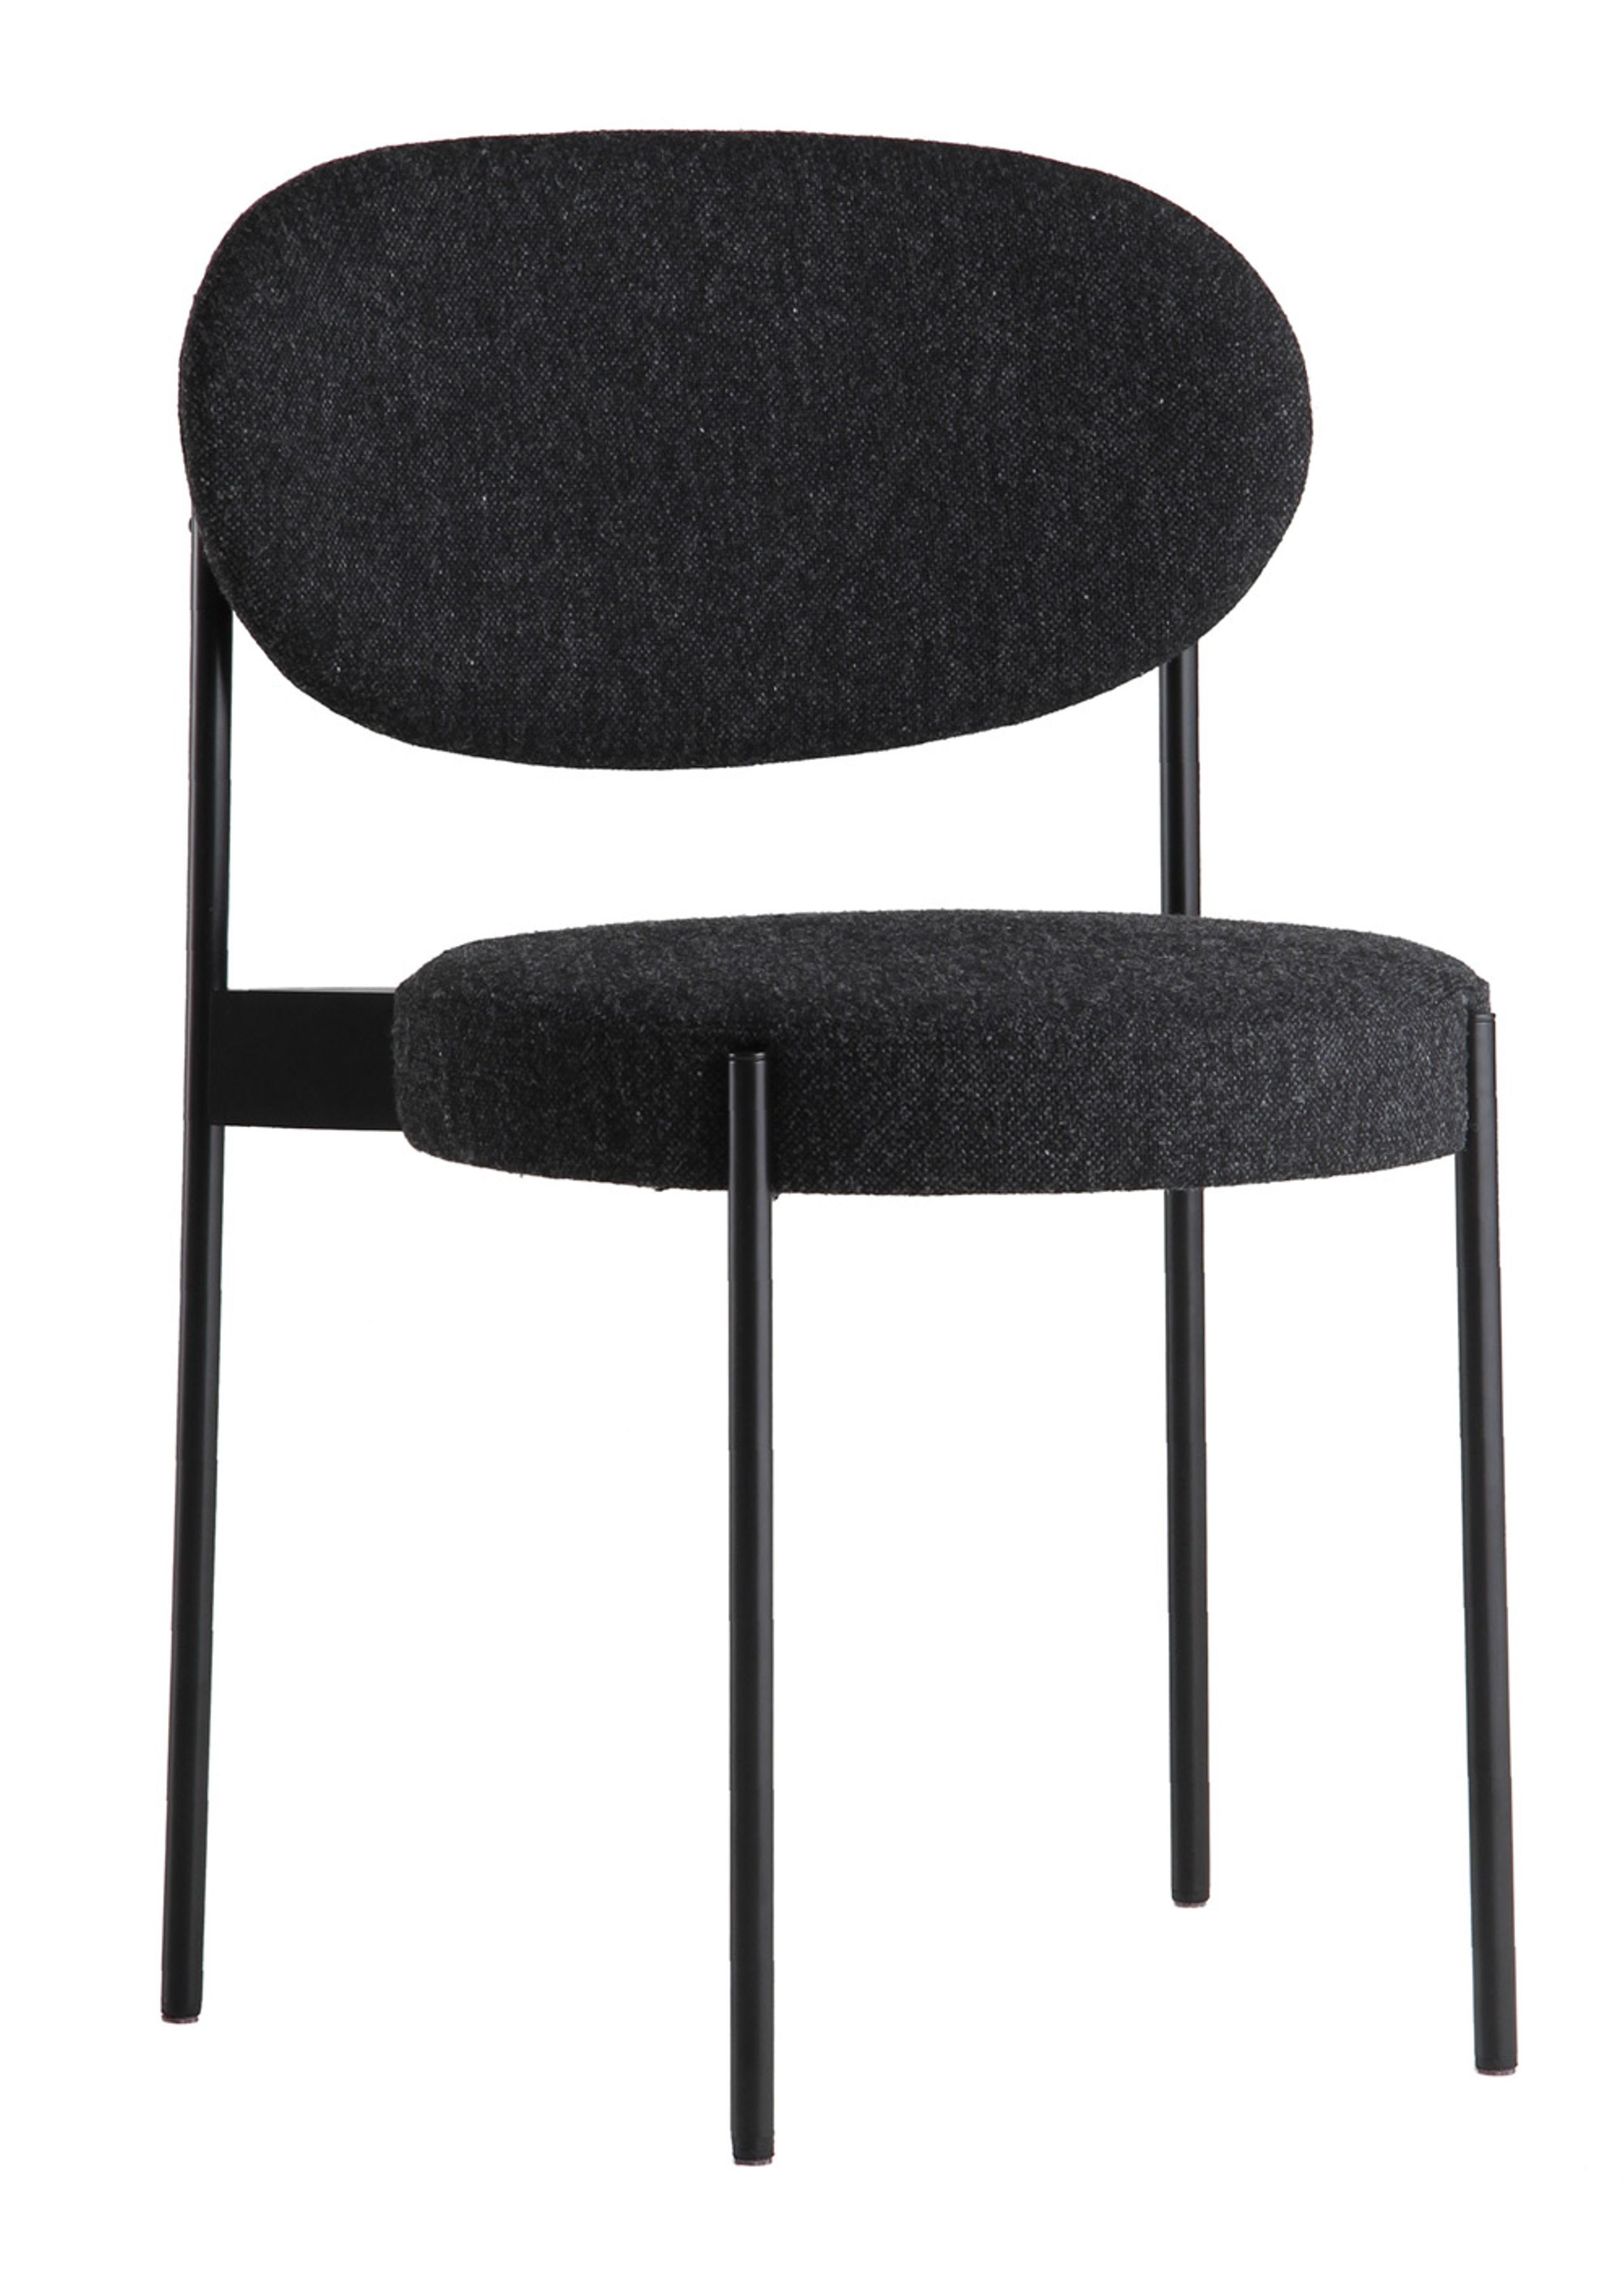 430 stacking chair by verner panton